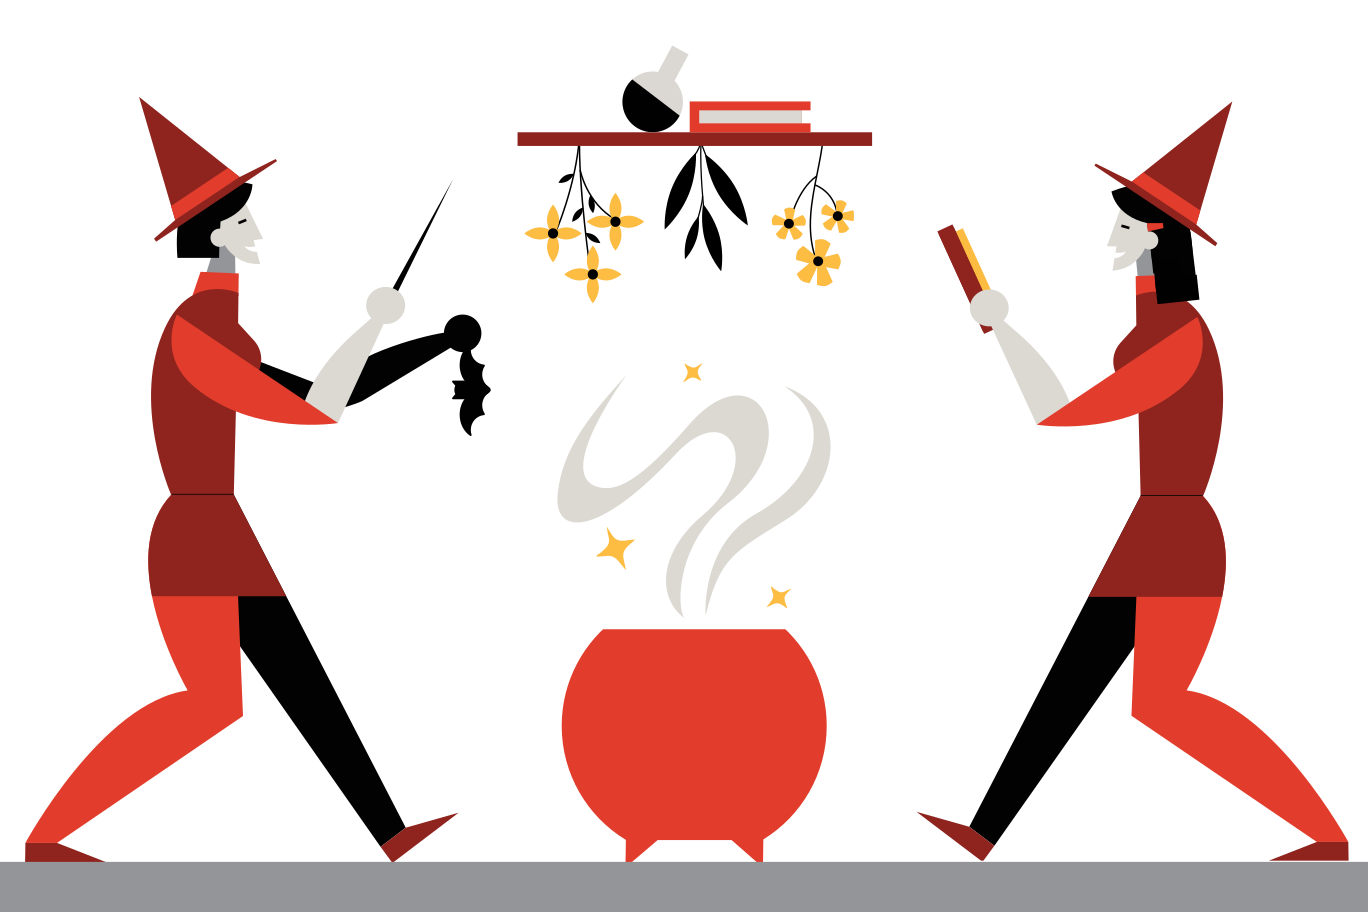 style Party of witches Vector images in PNG and SVG   Icons8 Illustrations